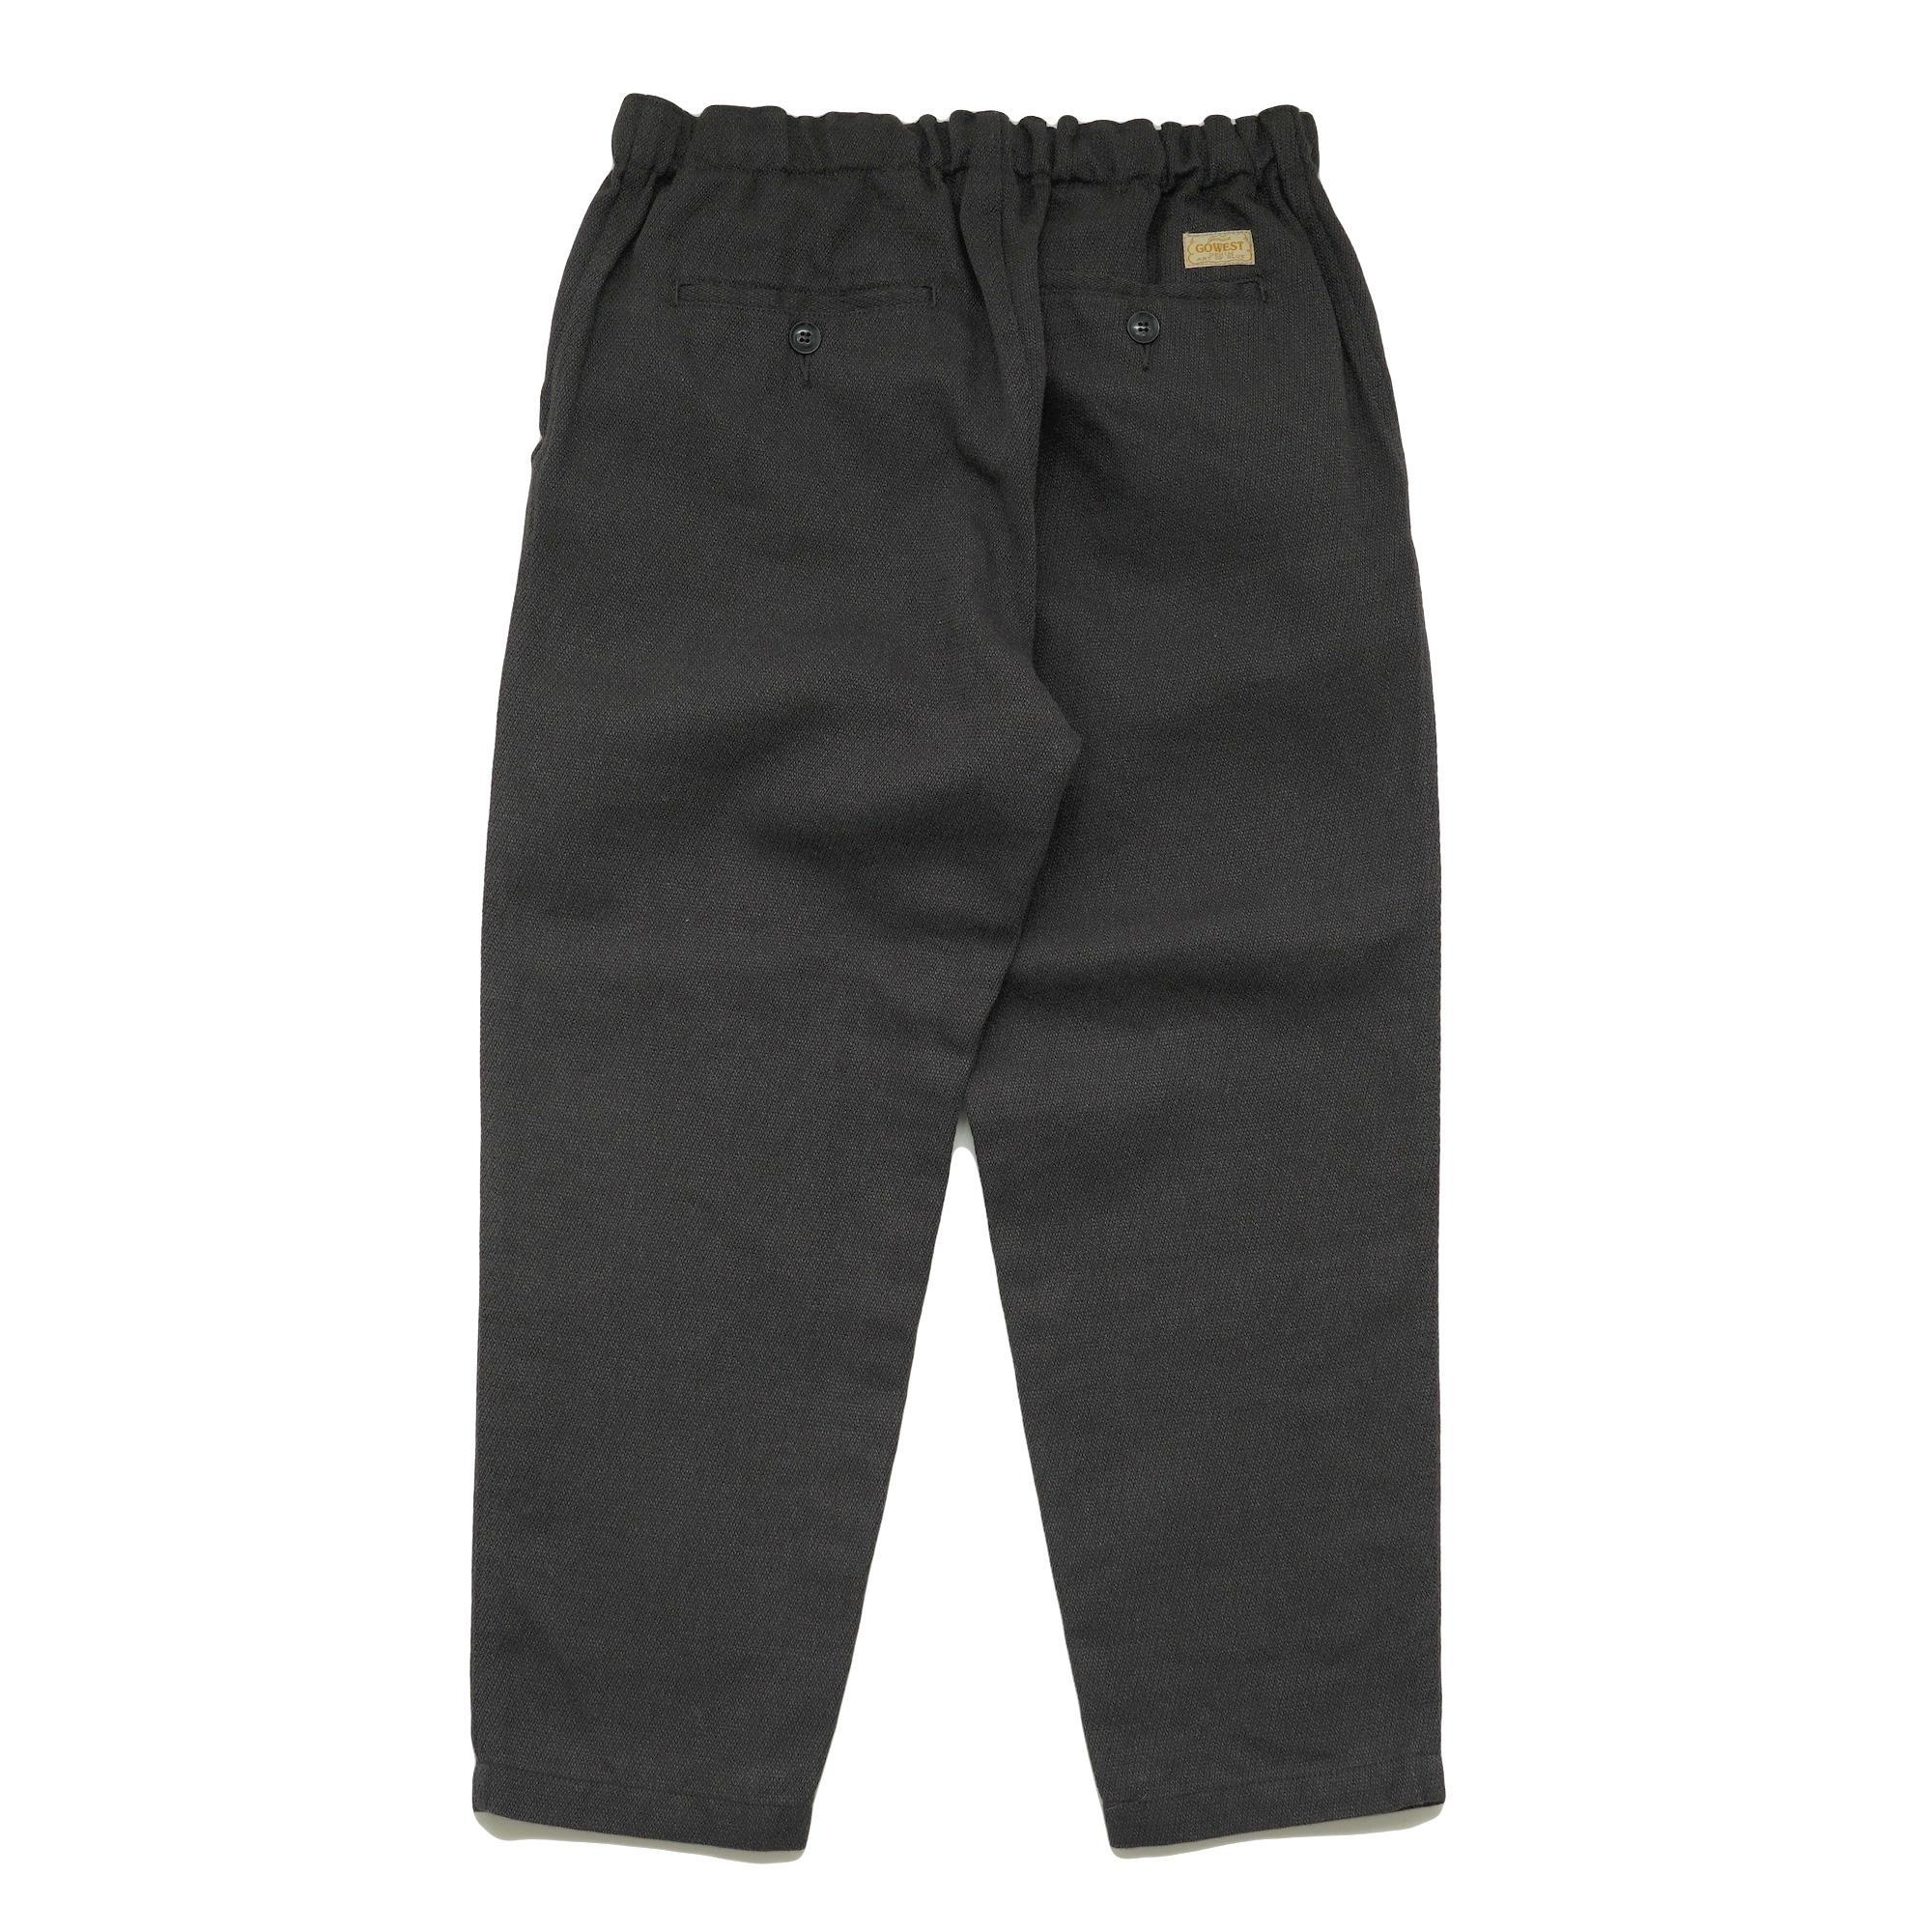 E.G PANTS/DRILL JACQUARD CLOTH